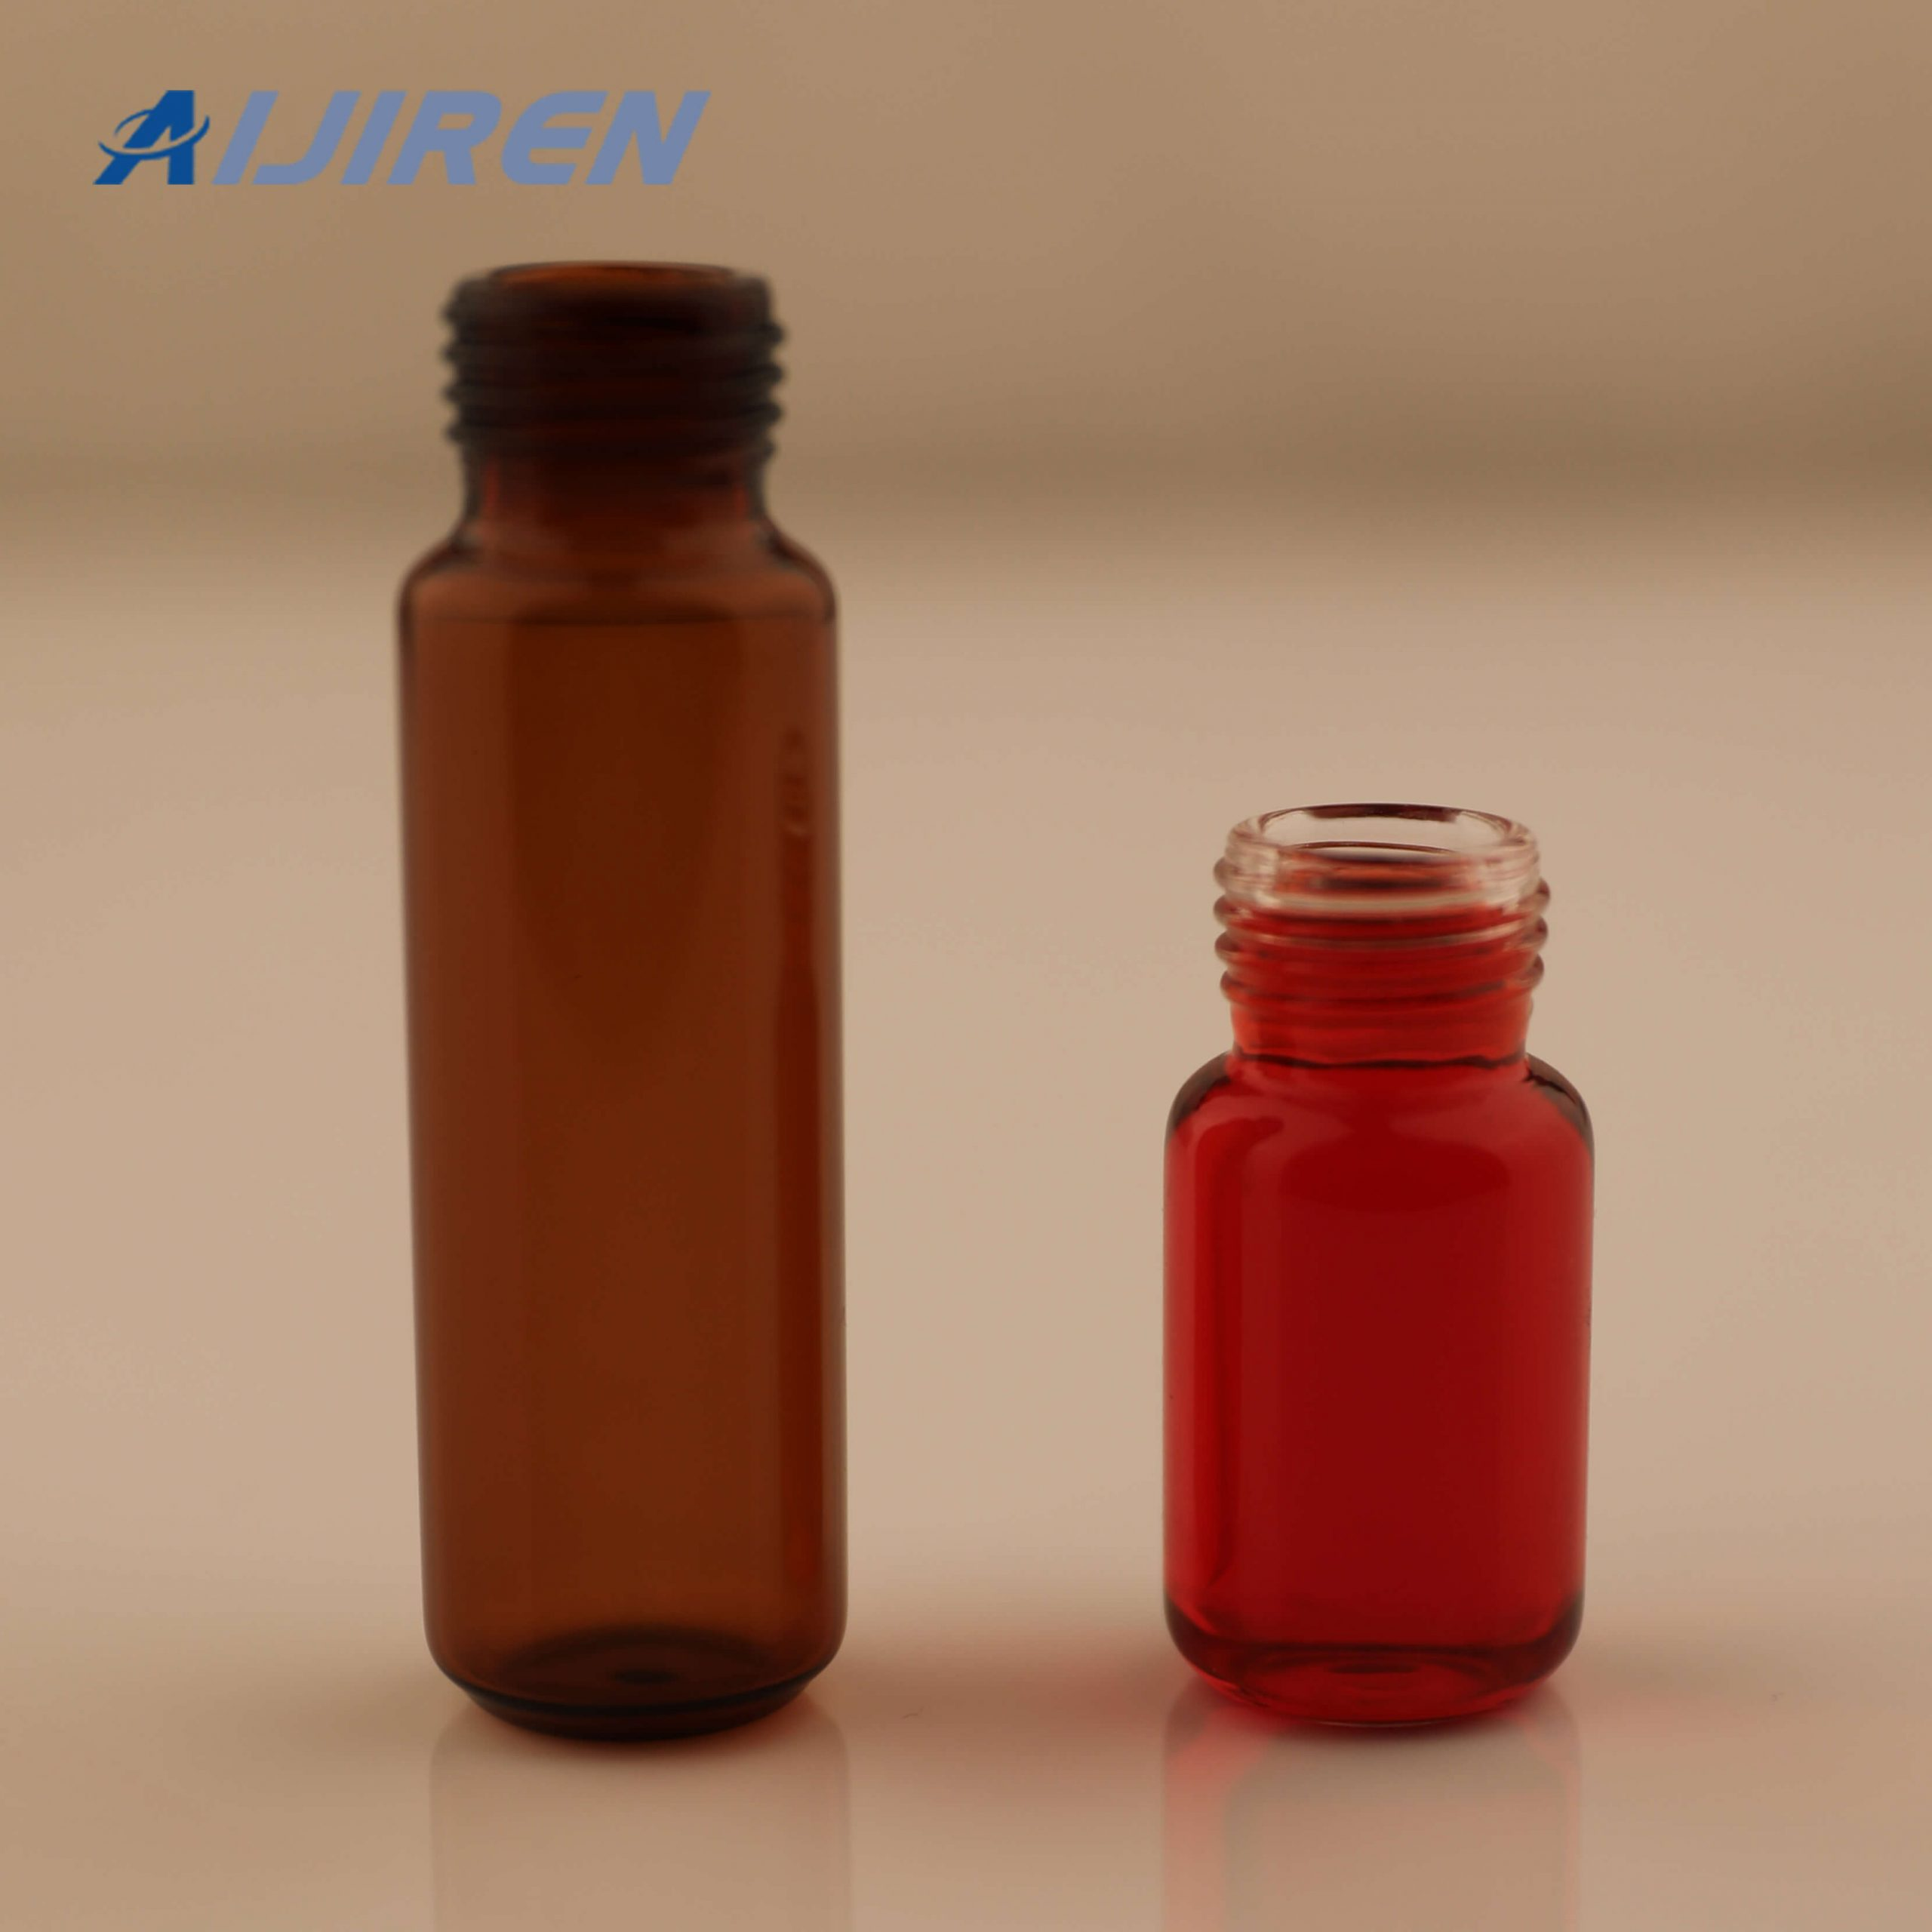 18mm Screw Top Headspace Vials for Agilent